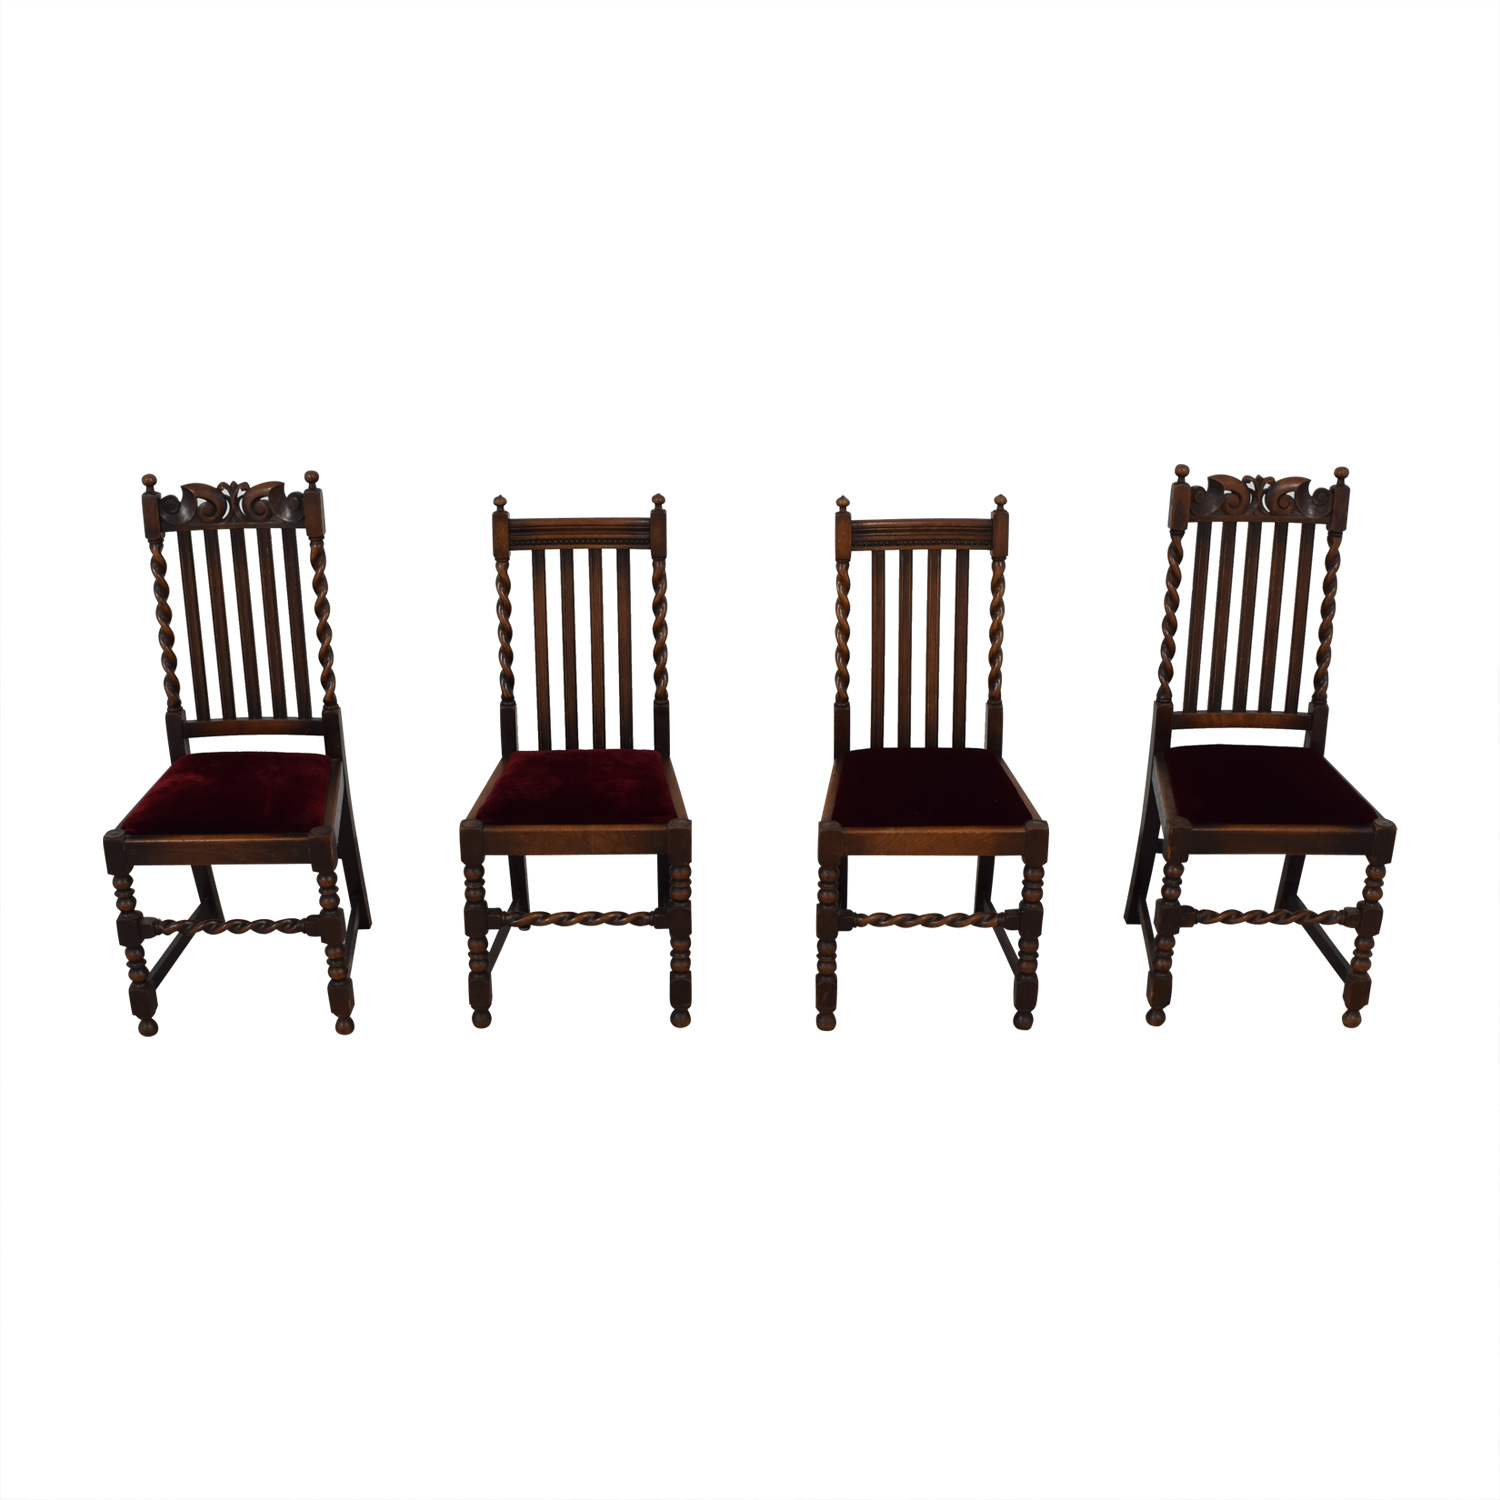 buy Jacobian Barley Twist Chairs  Chairs